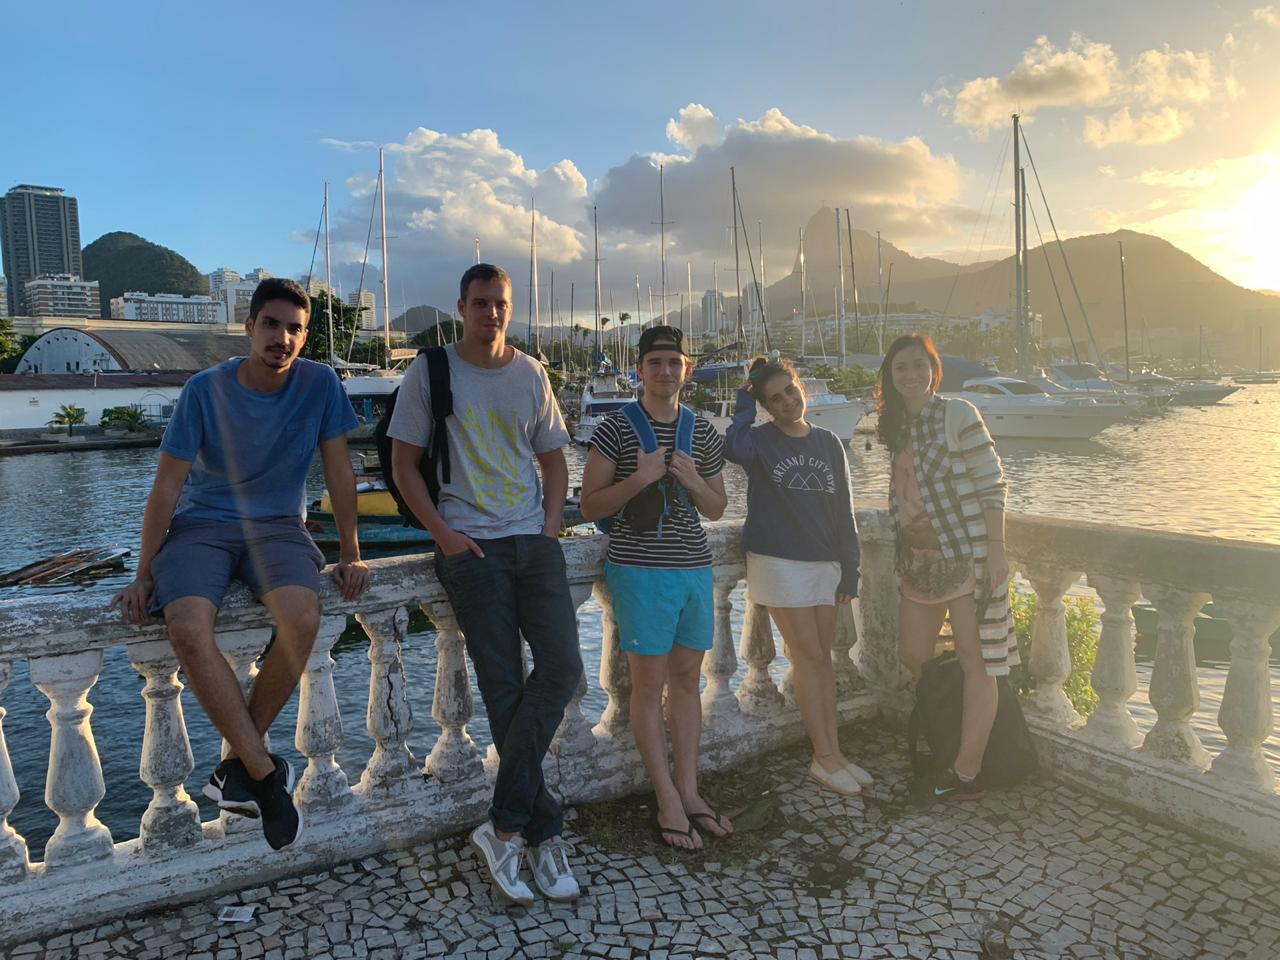 Learning Portuguese at Urca. Foreign students enjoying a beautiful sunset at Urca neighborhood.